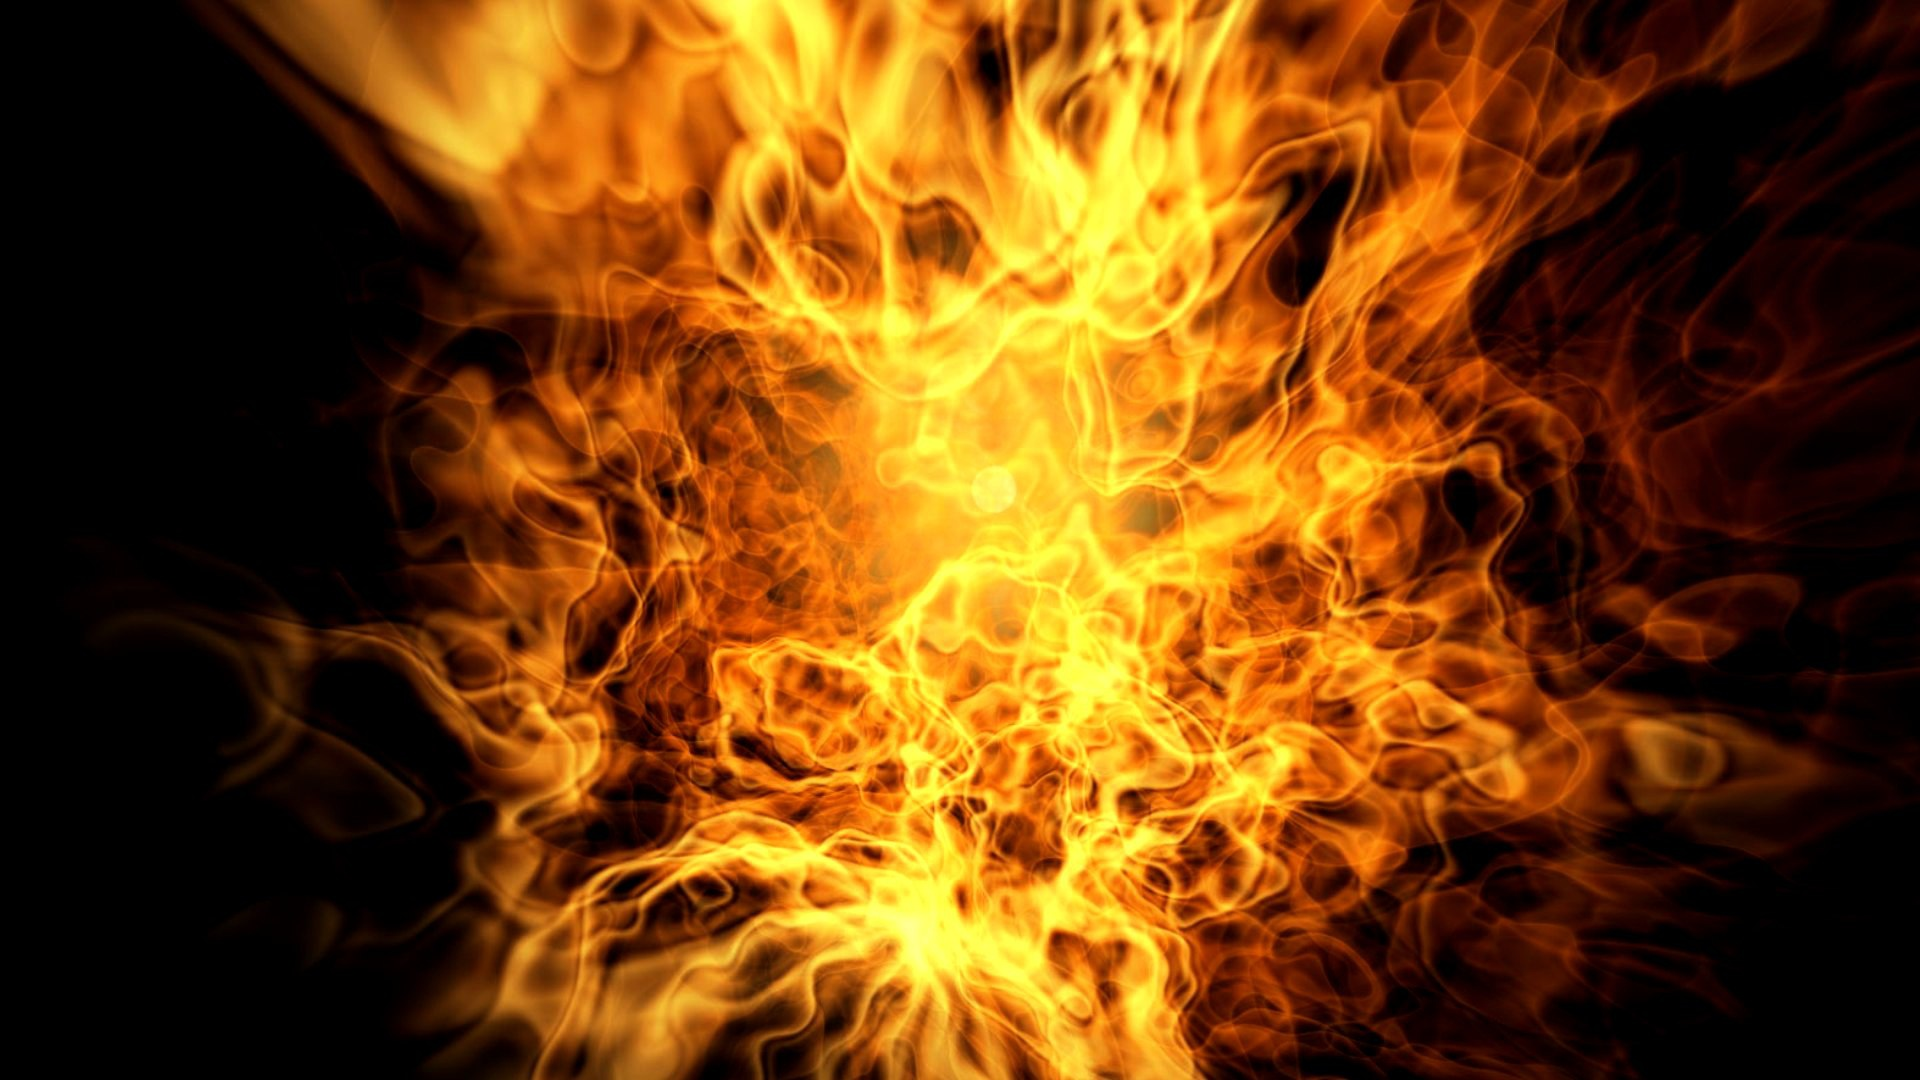 hd wallpapers desktop fire - photo #42